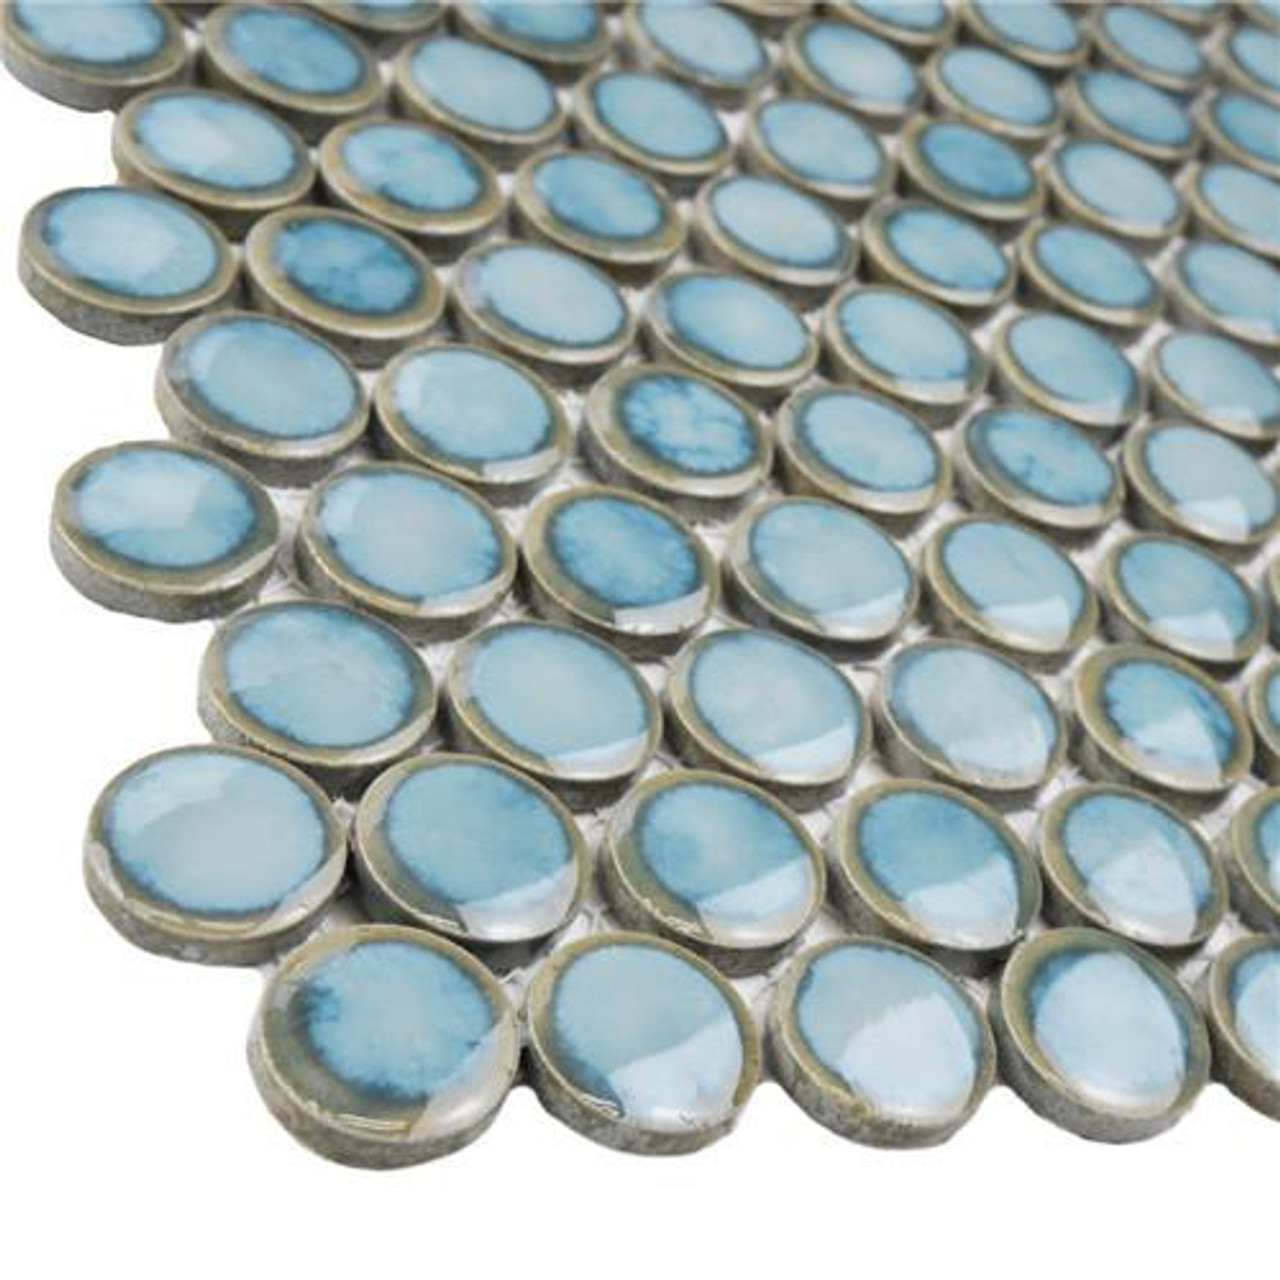 Ceramic Pennyround Mosaic Tiles